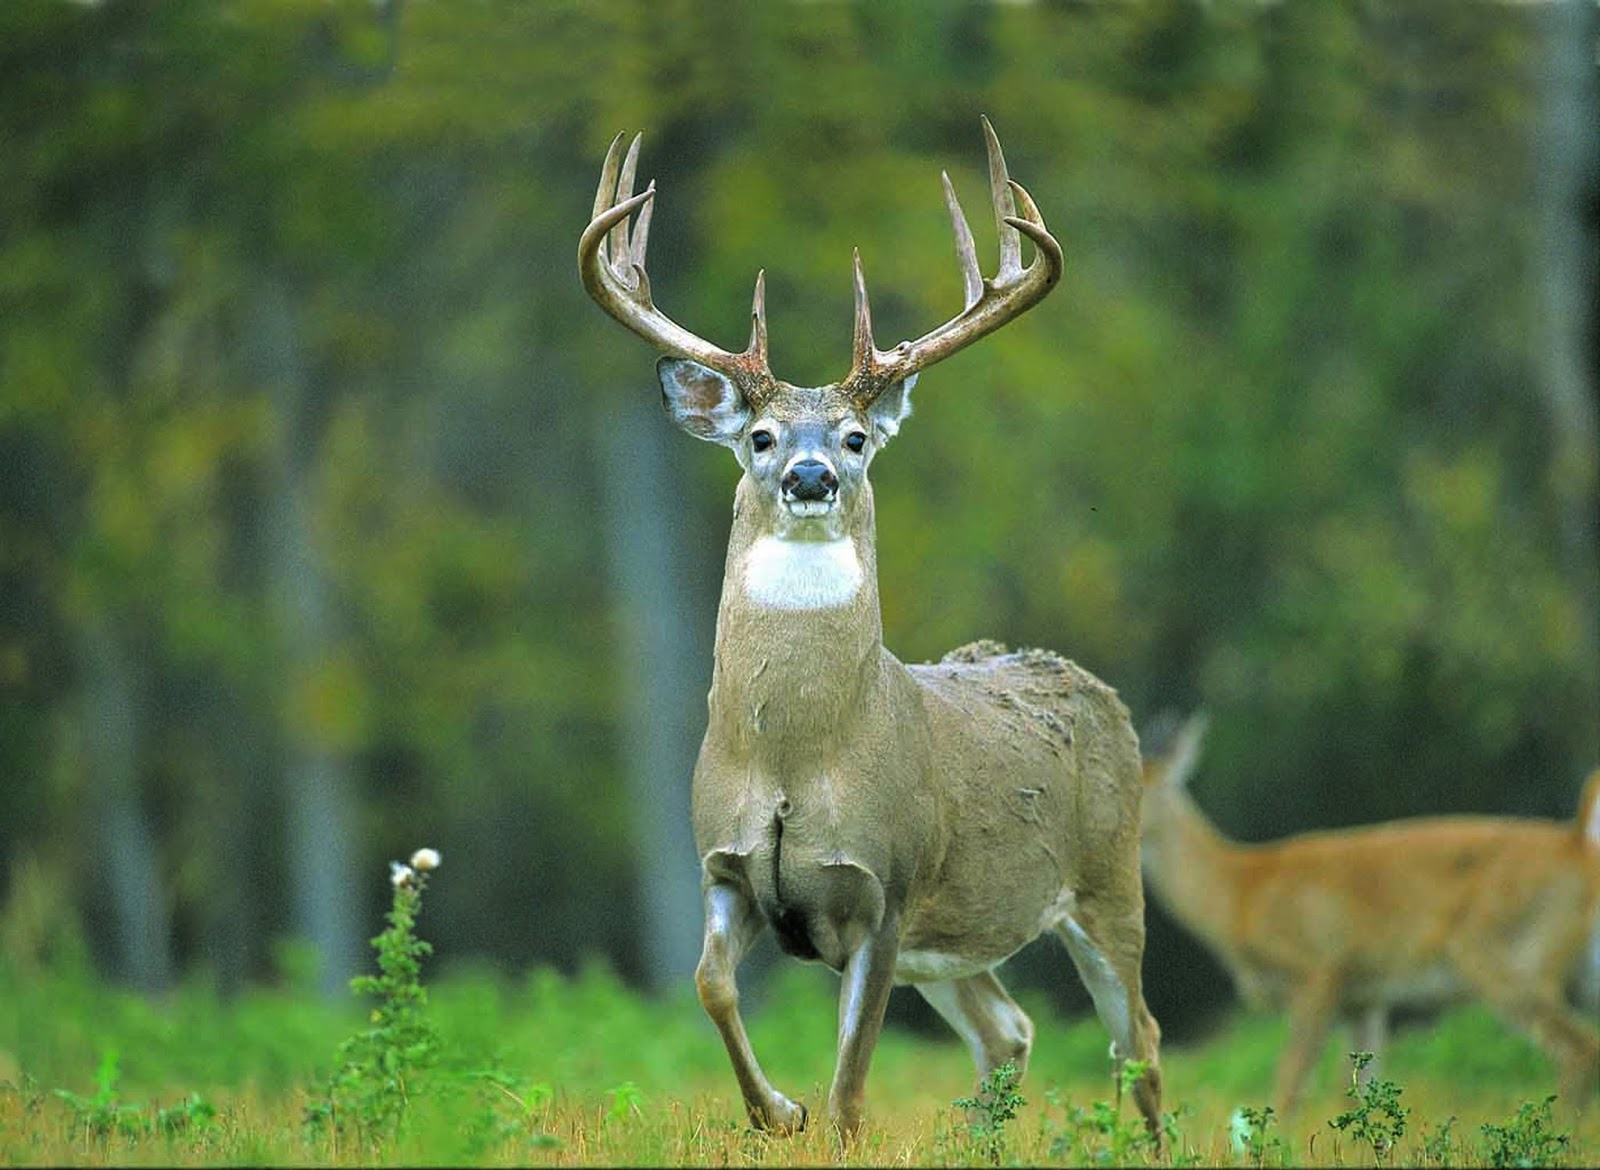 Deer Backgrounds For Iphone: Whitetail Deer HD Wallpaper